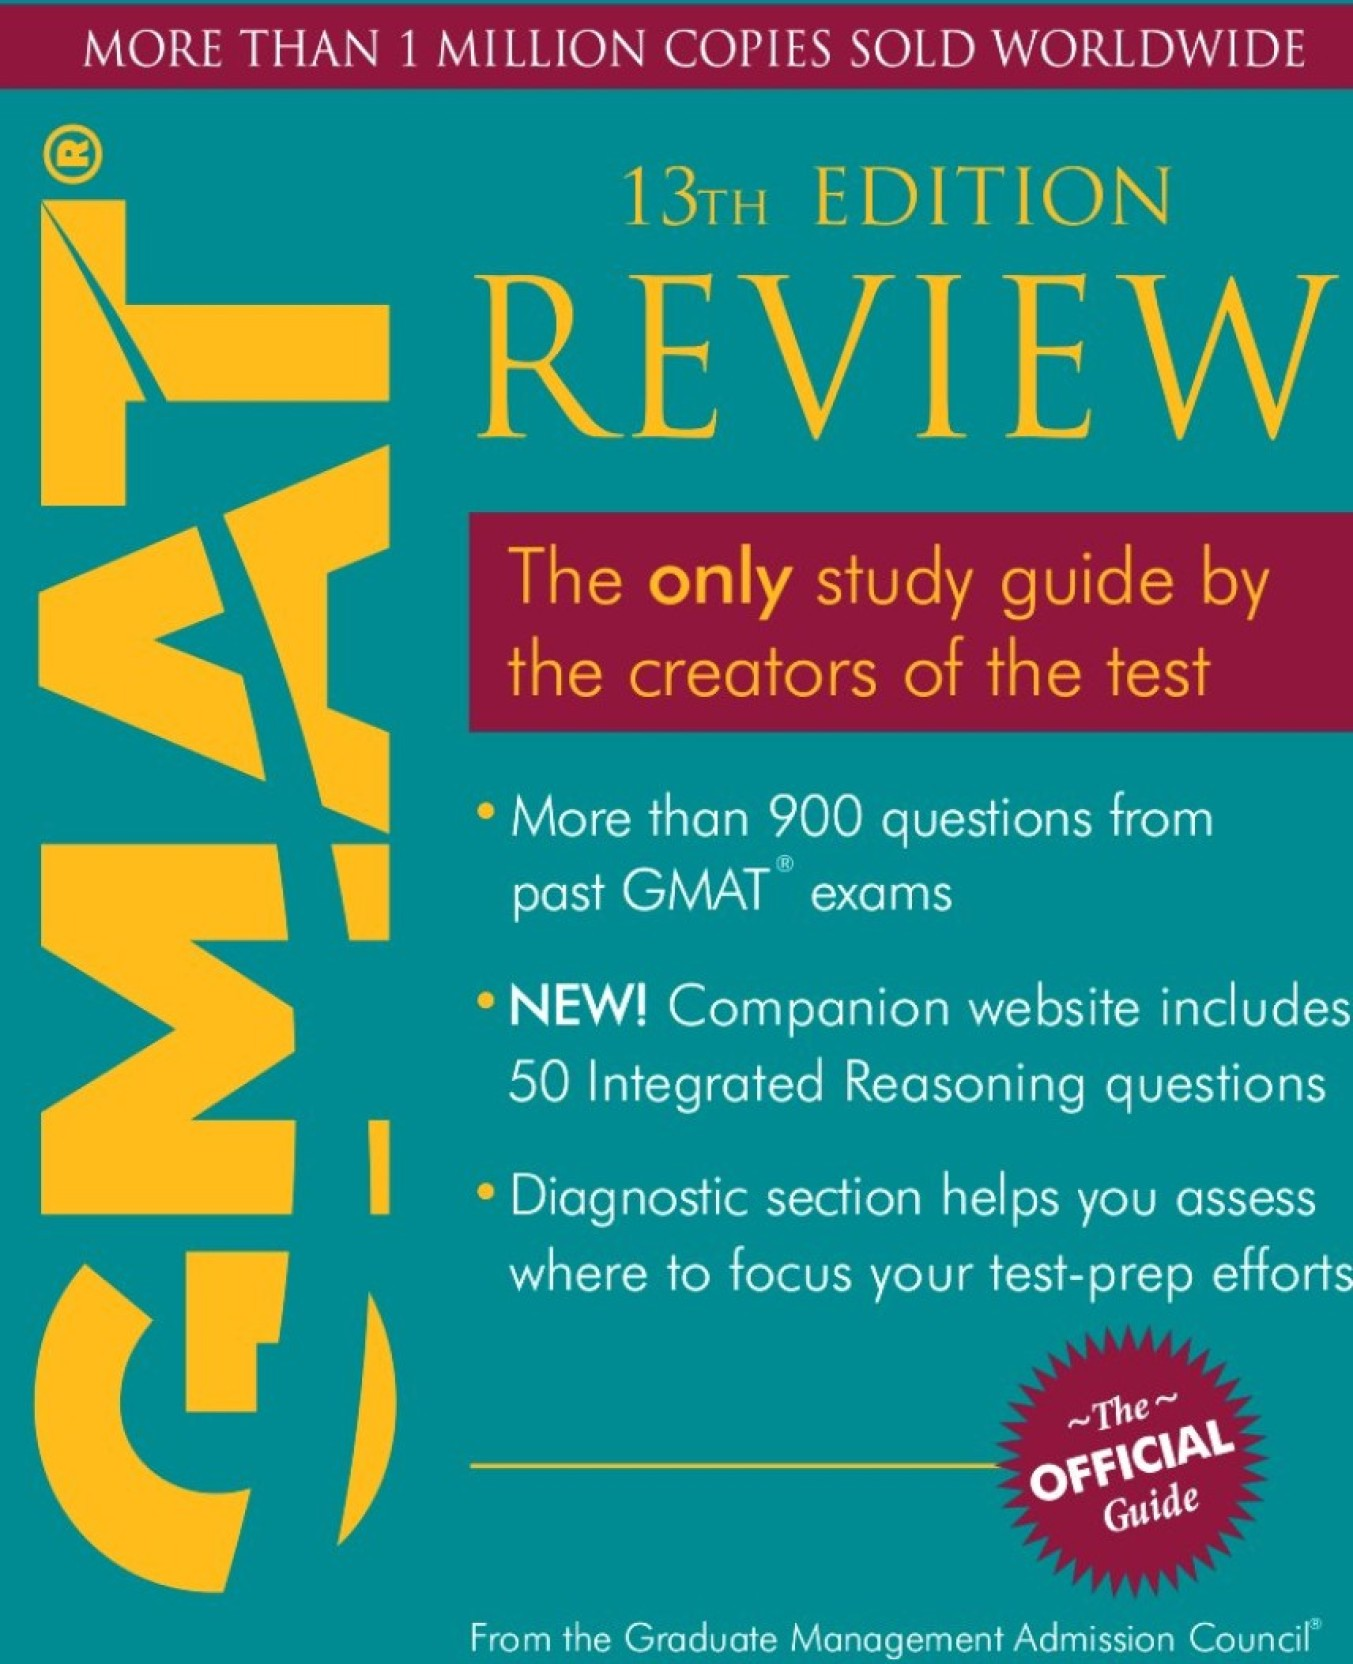 Best GMAT Study Guides | Compare the Best on the Market